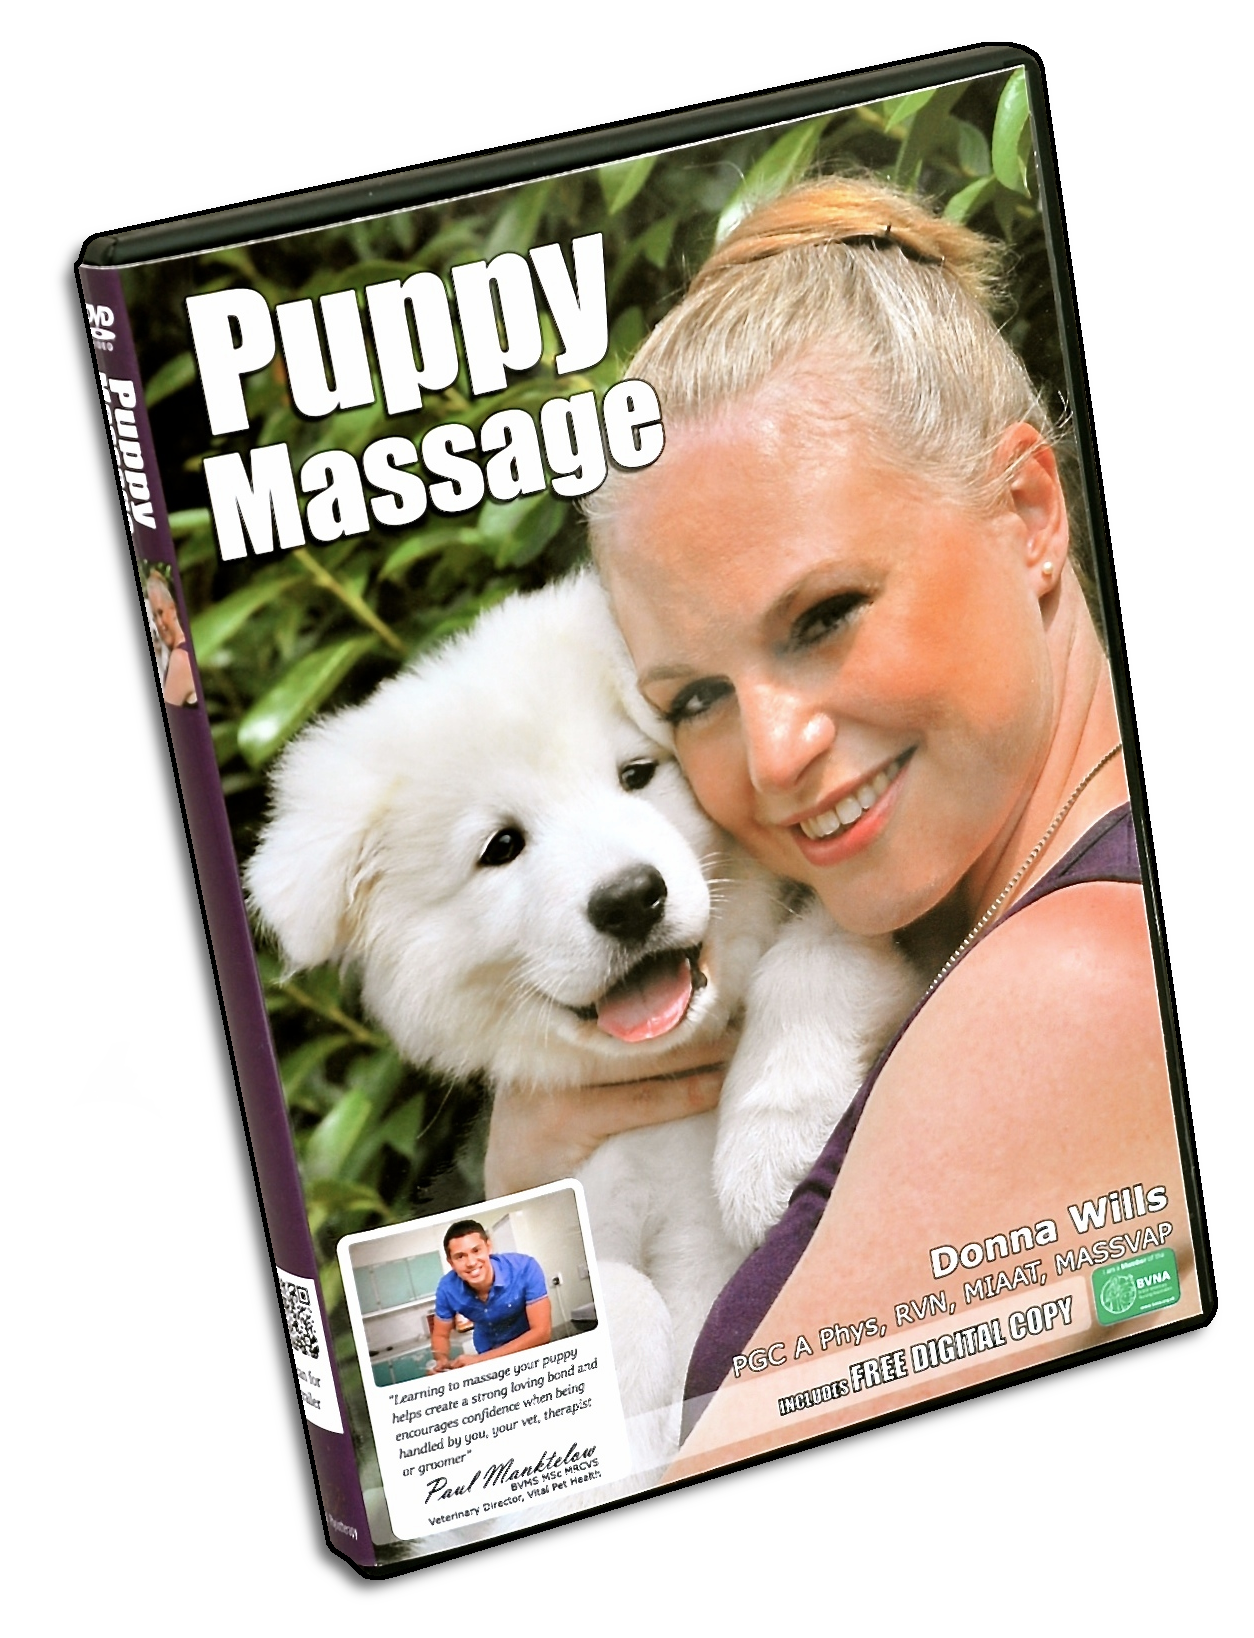 Puppy Massage DVD - 1 year